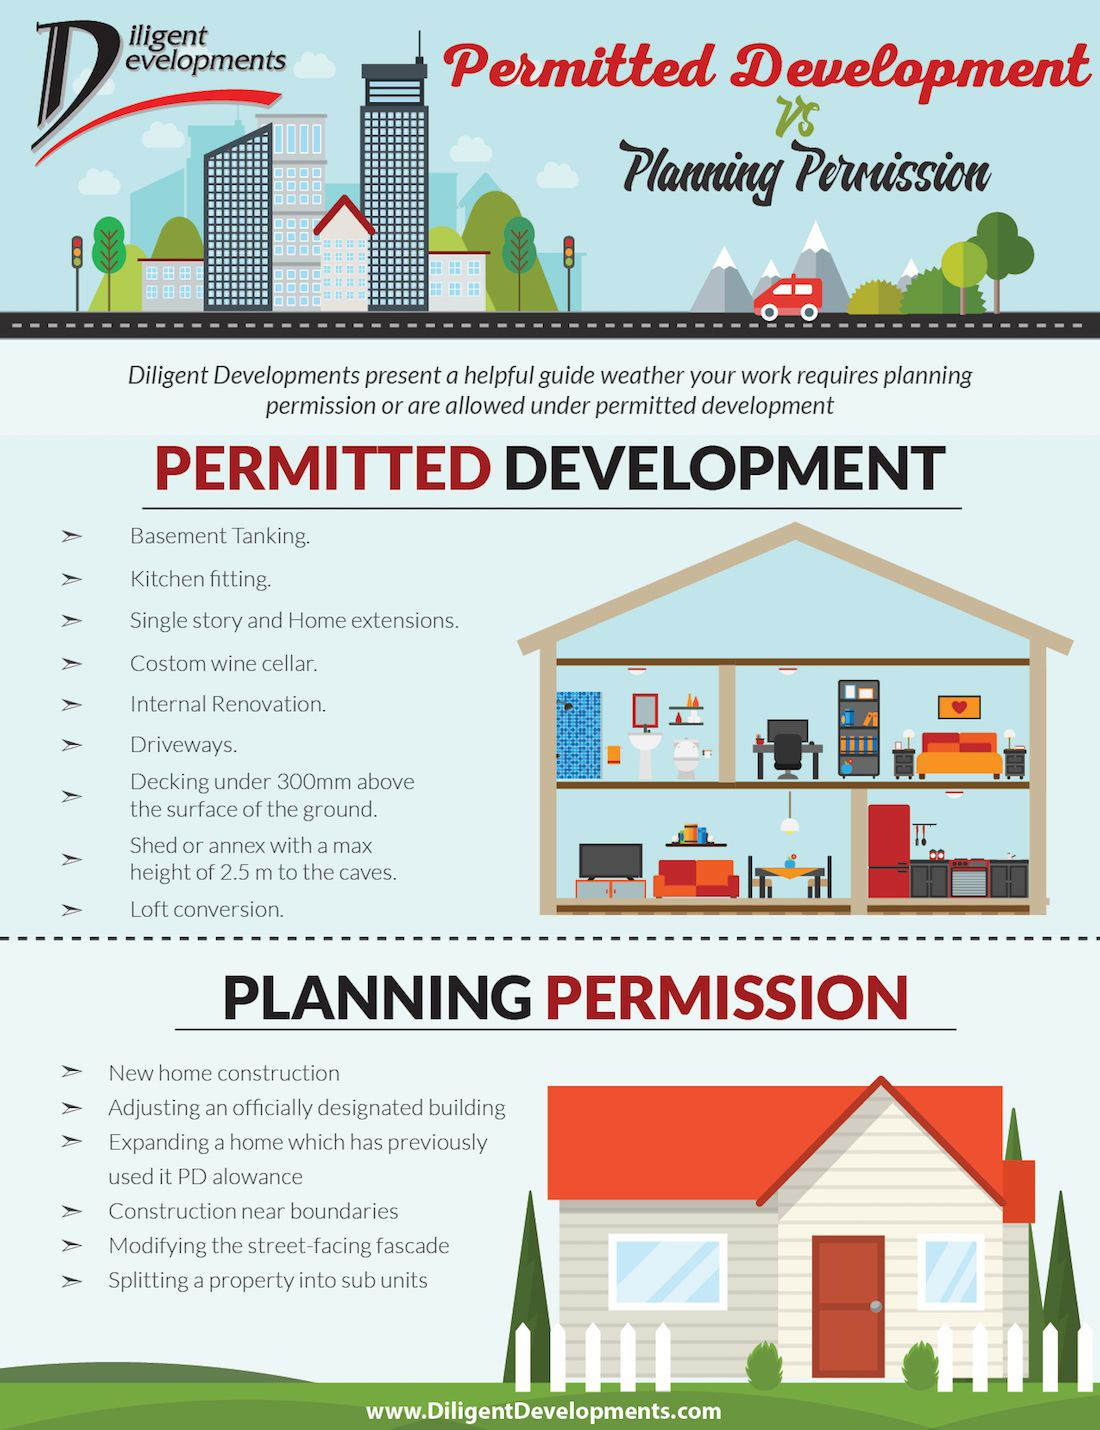 Permitted Development vs Planning Permission